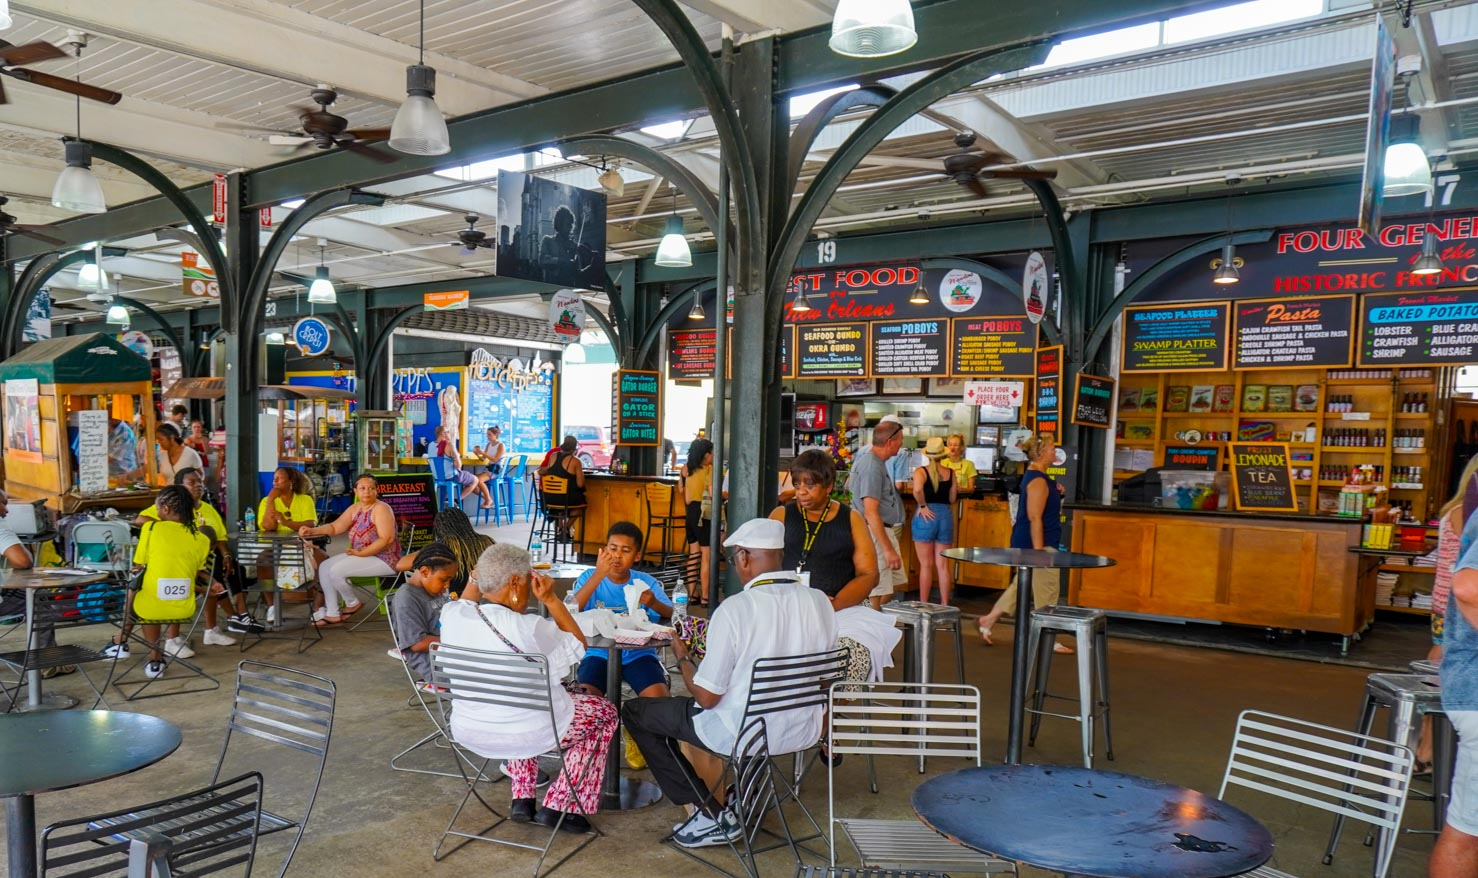 Tables of people at French Market in New Orleans